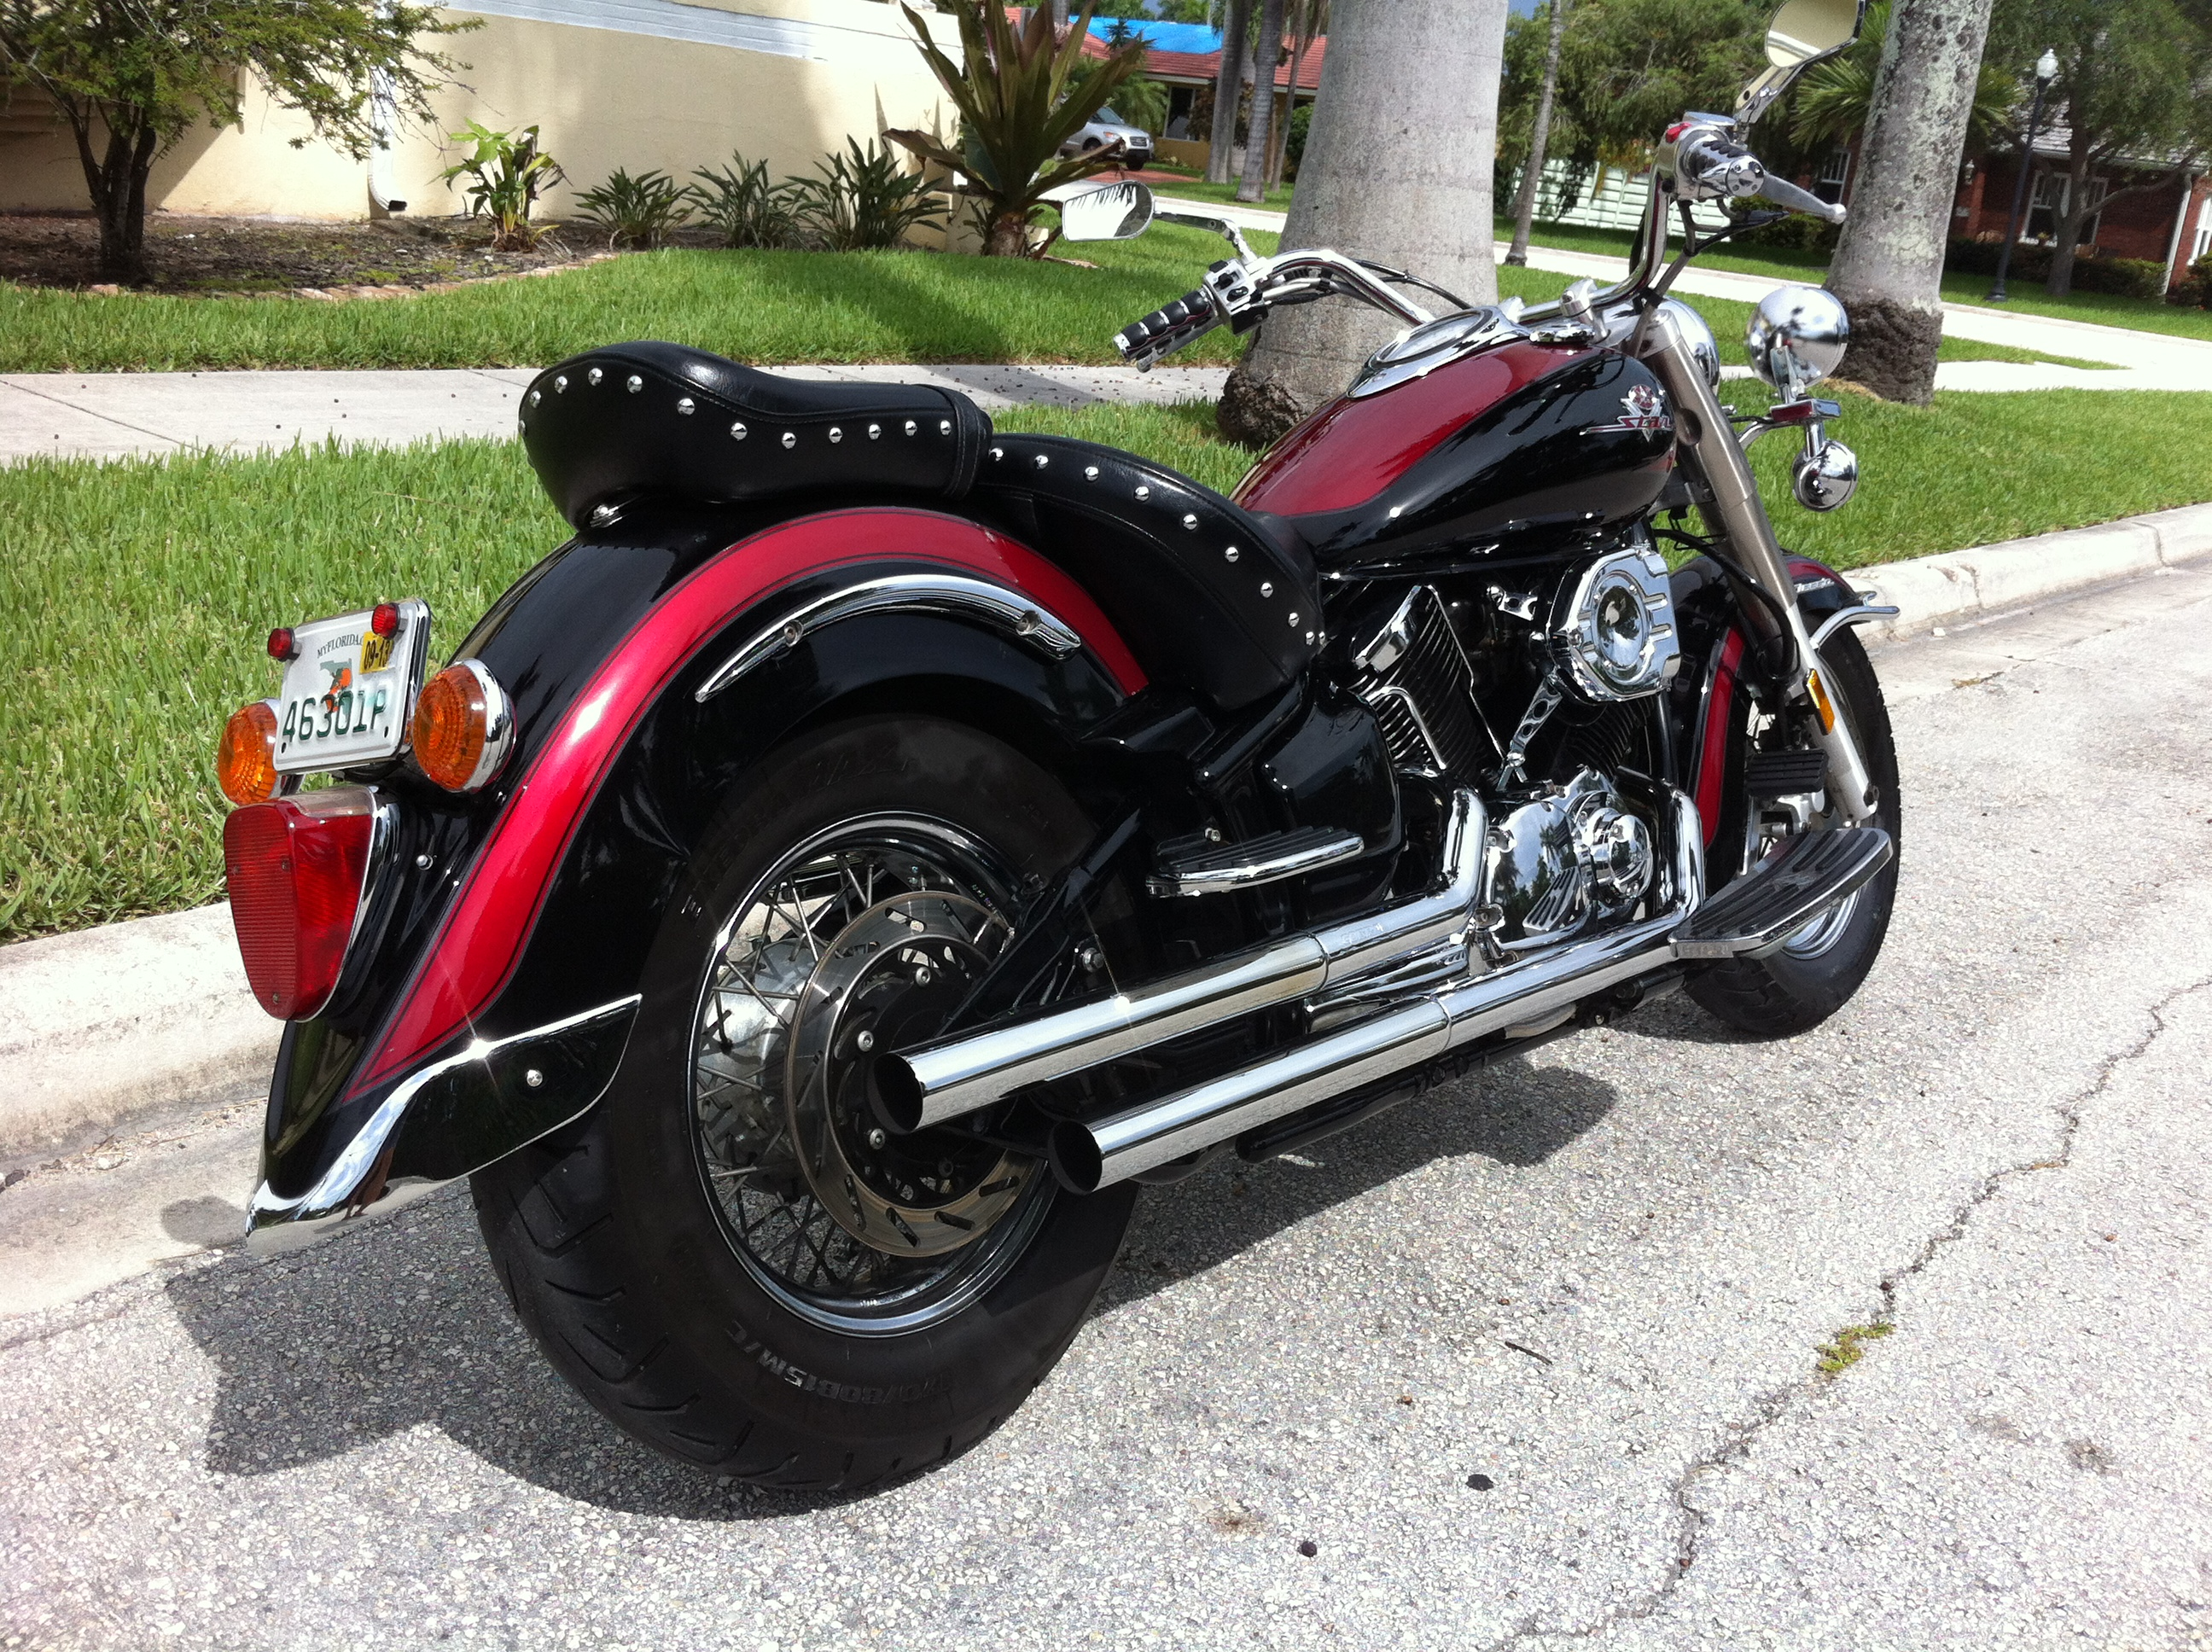 sell motorcycle broward florida